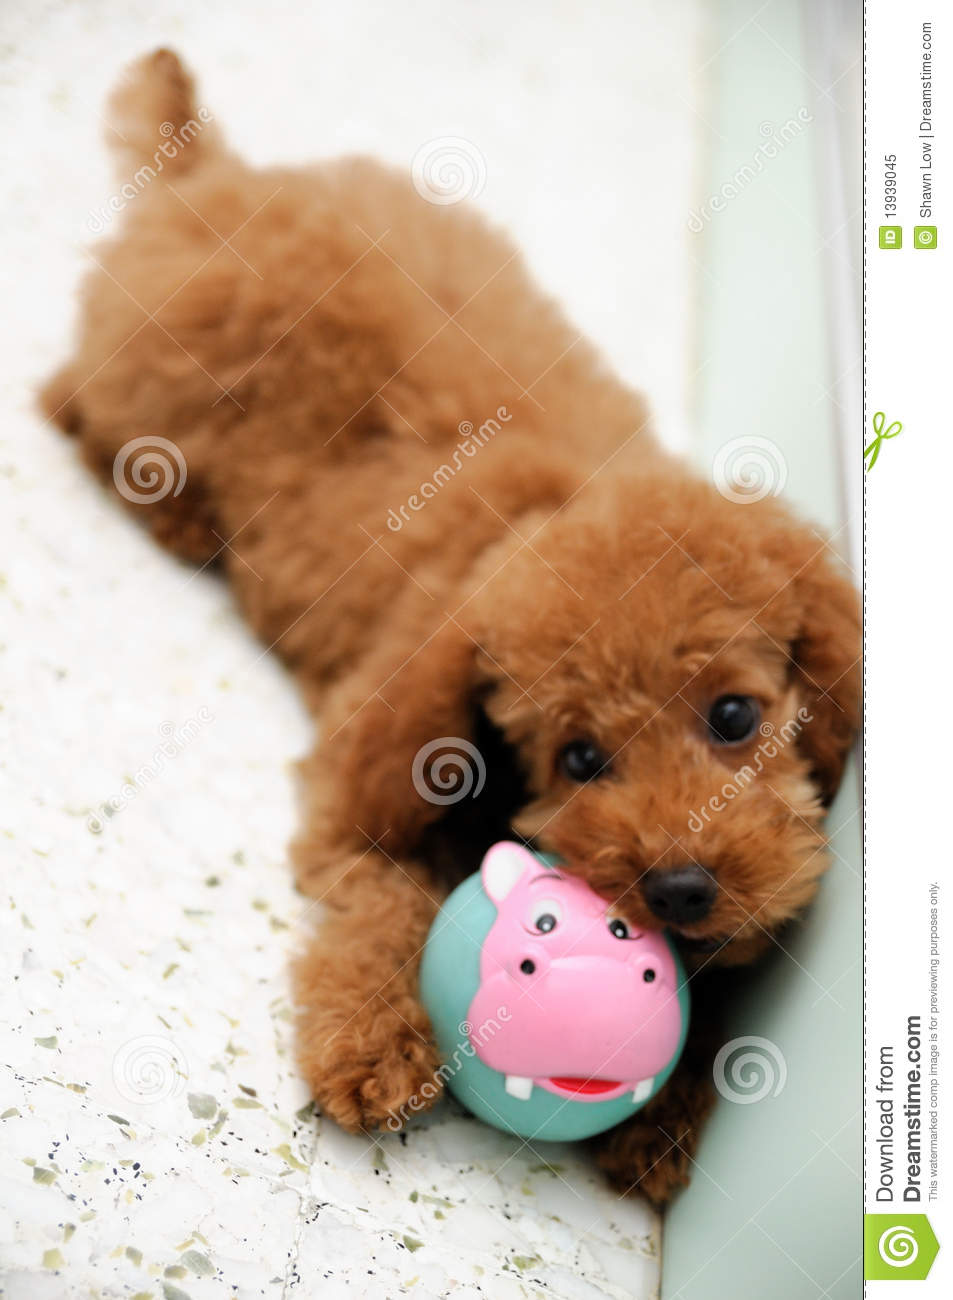 toy poodle at play 2 royalty free stock photo image